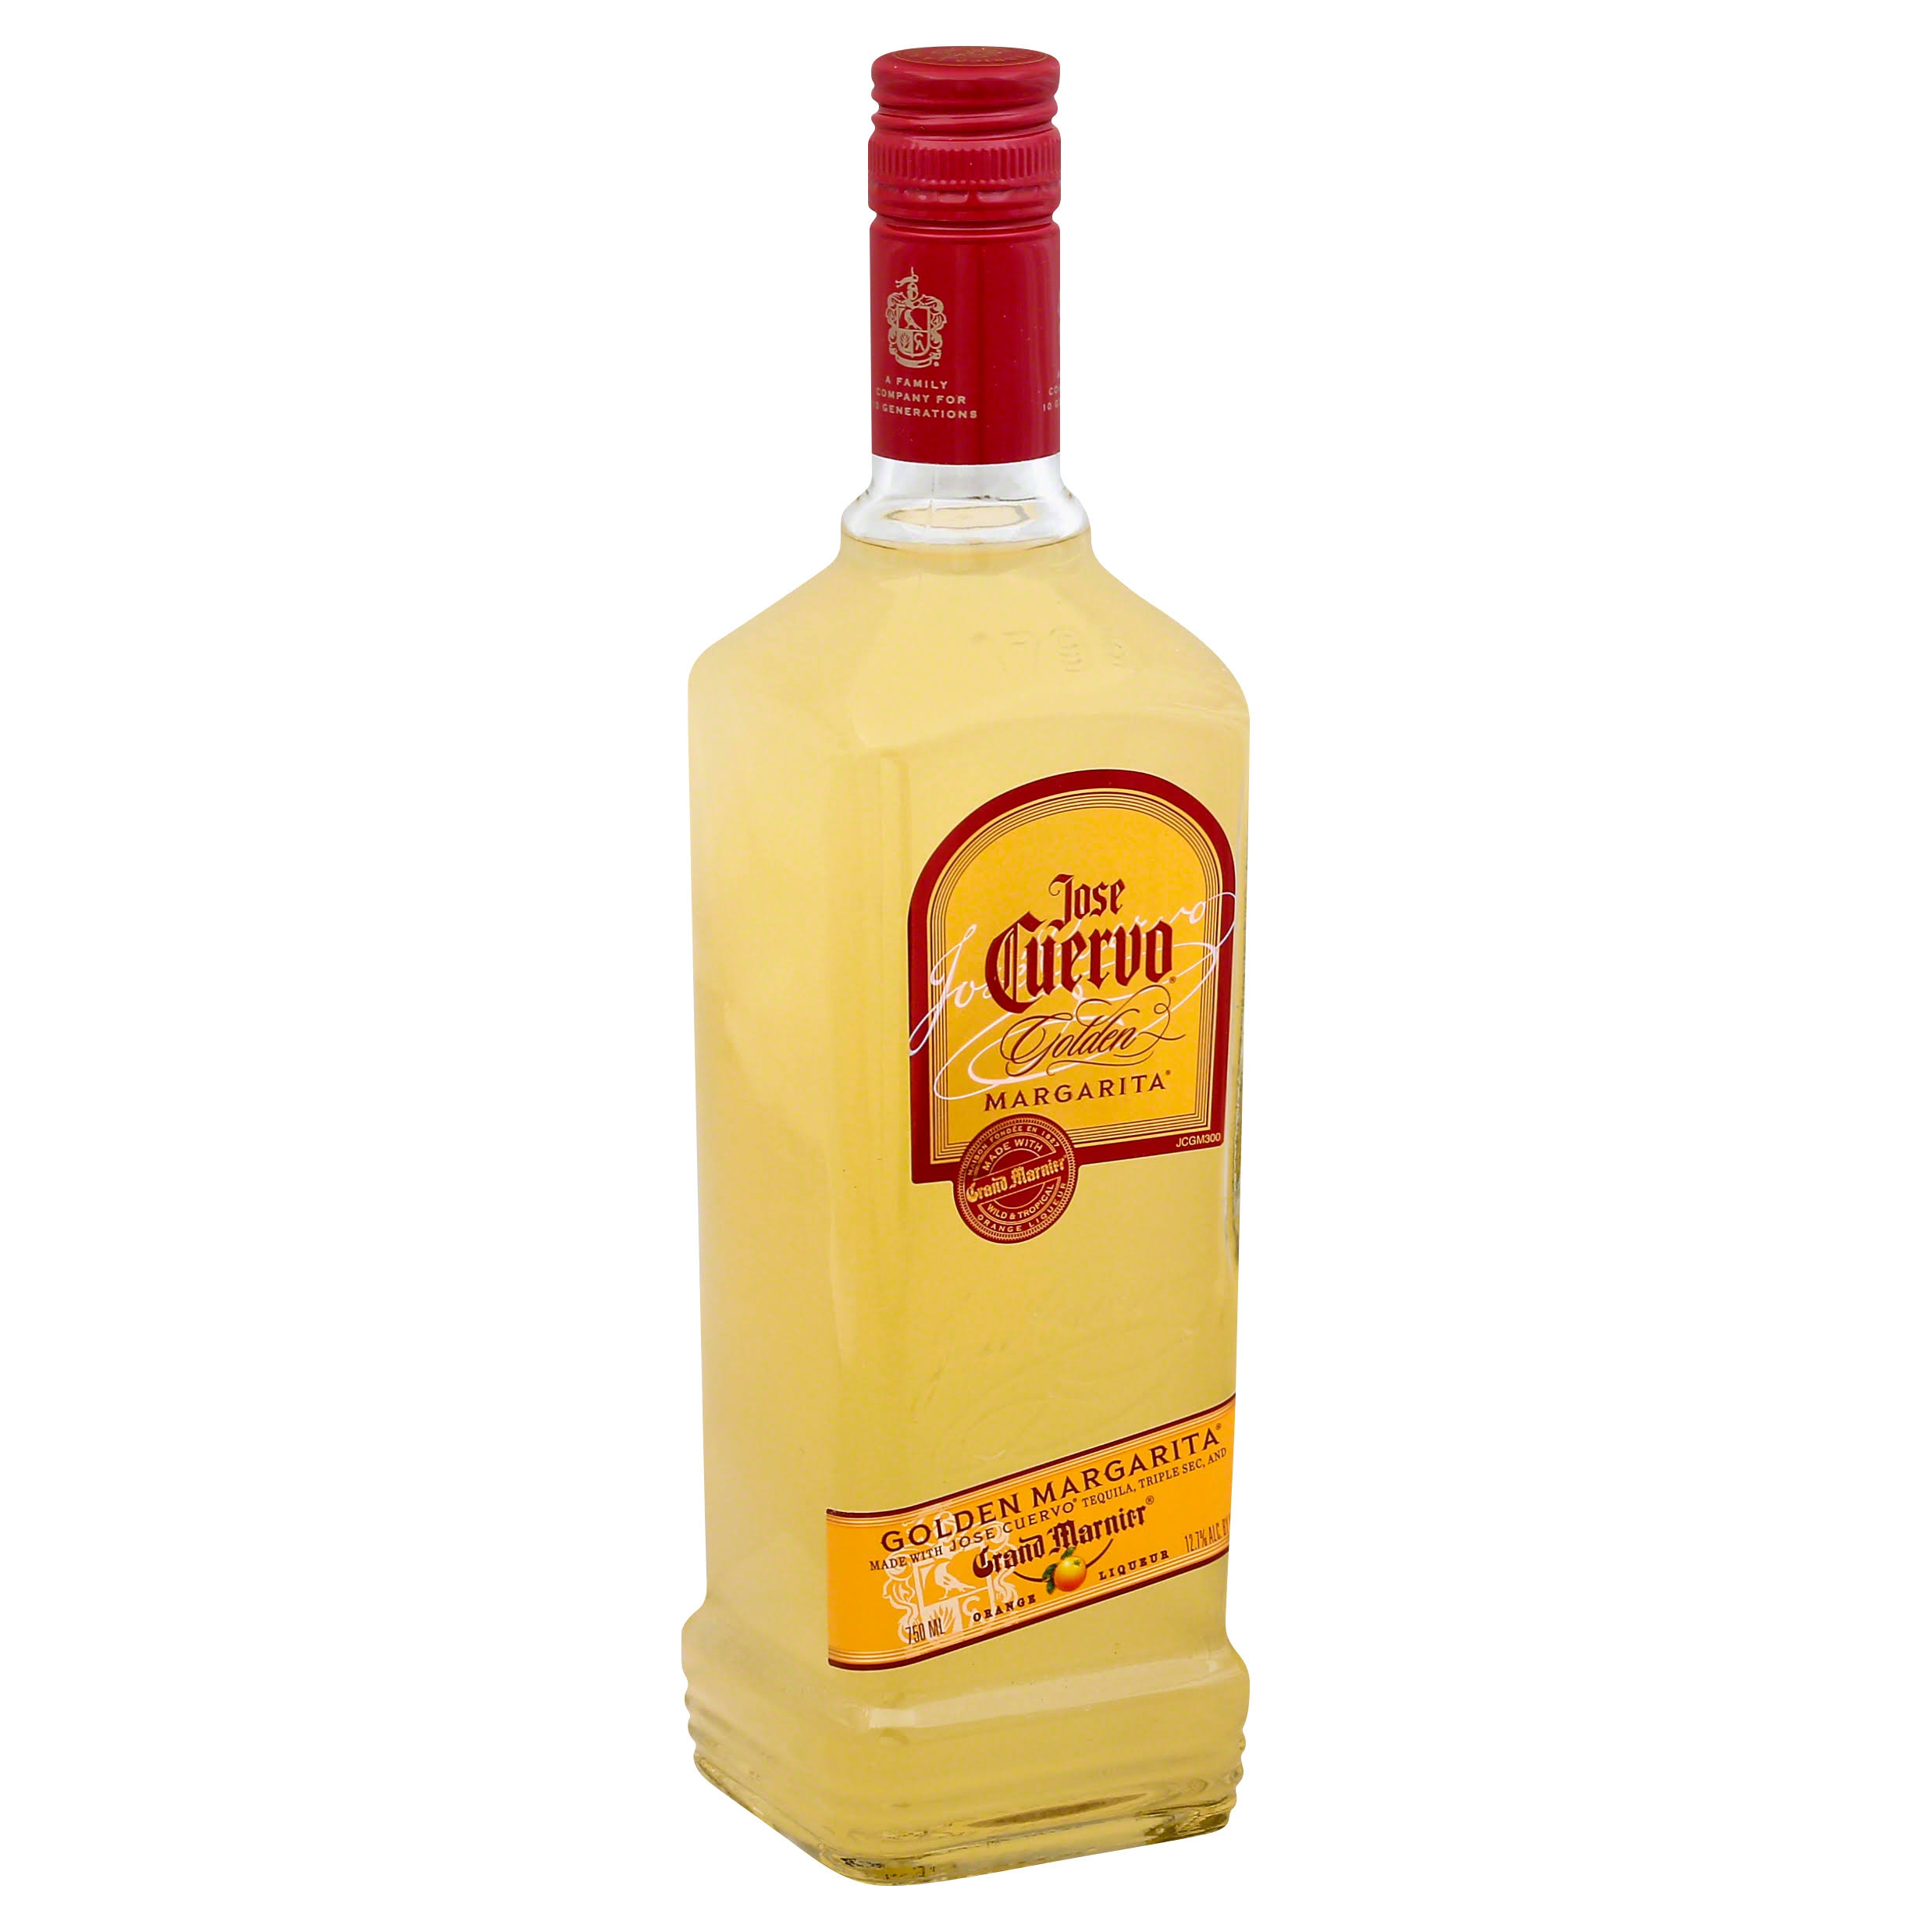 Jose Cuervo Golden Margarita - 750 ml bottle